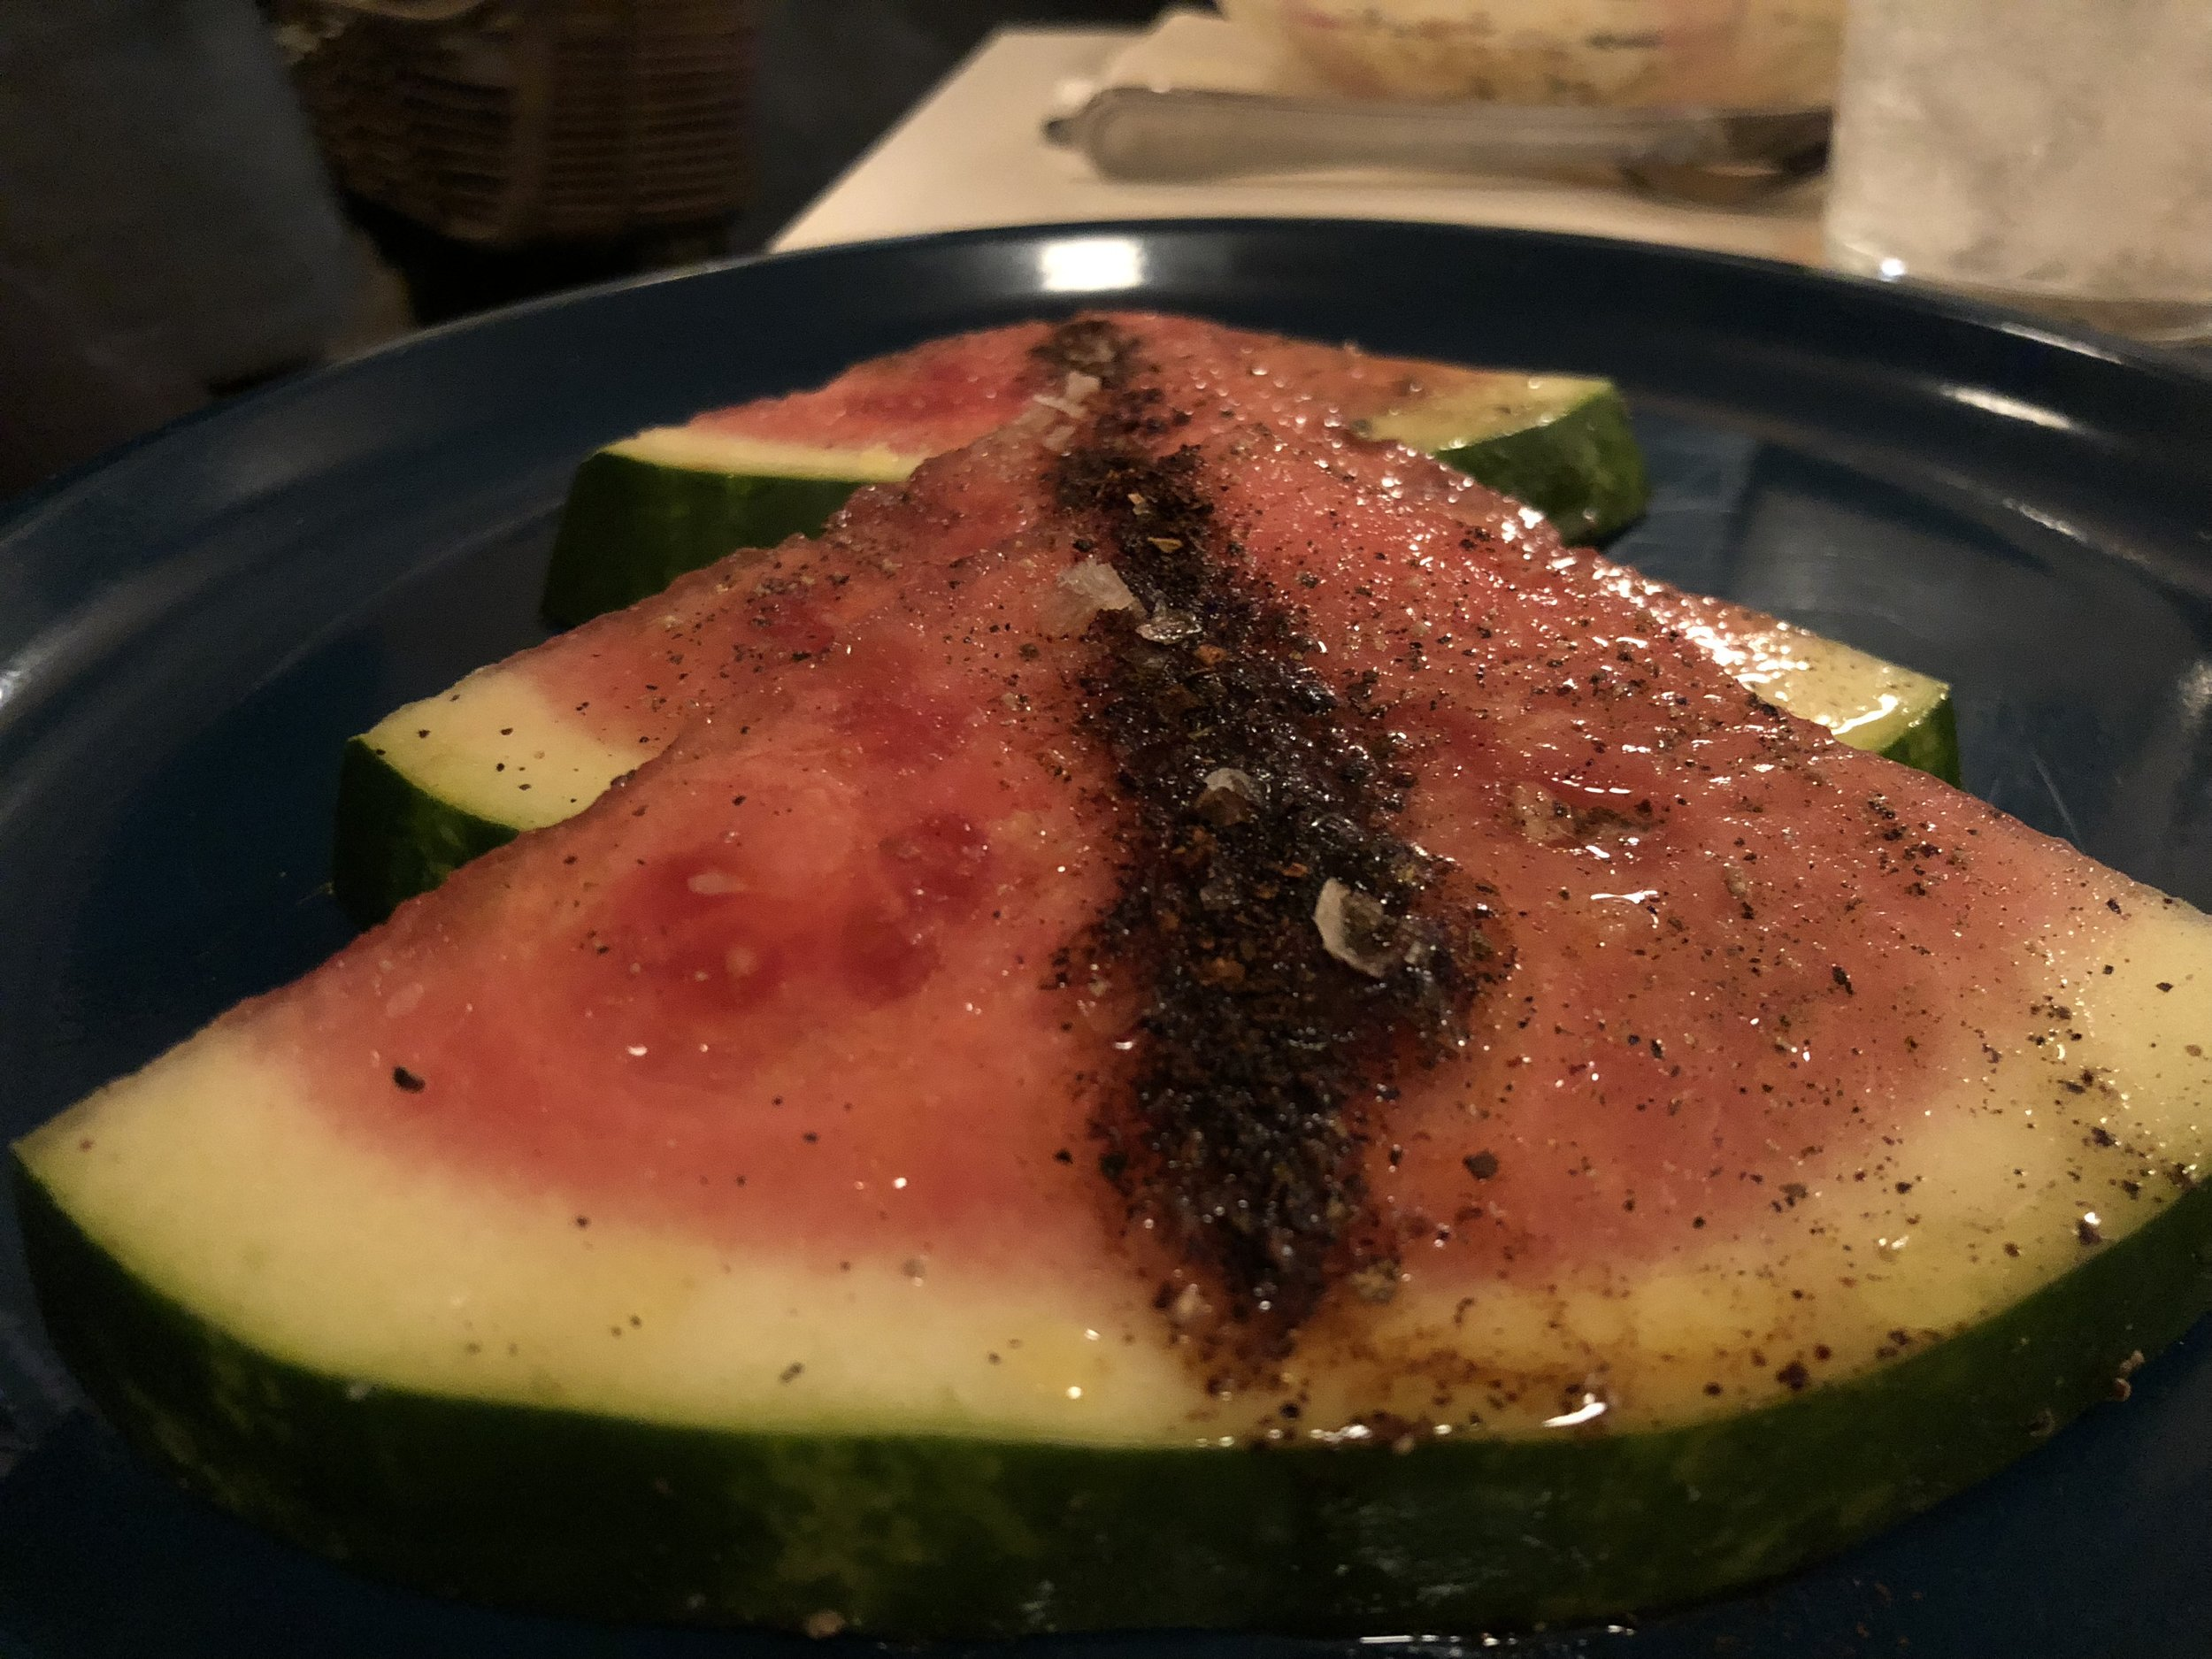 Watermelon  - Al pastor, sea salt Fine--watermelon. Nothing special happening.